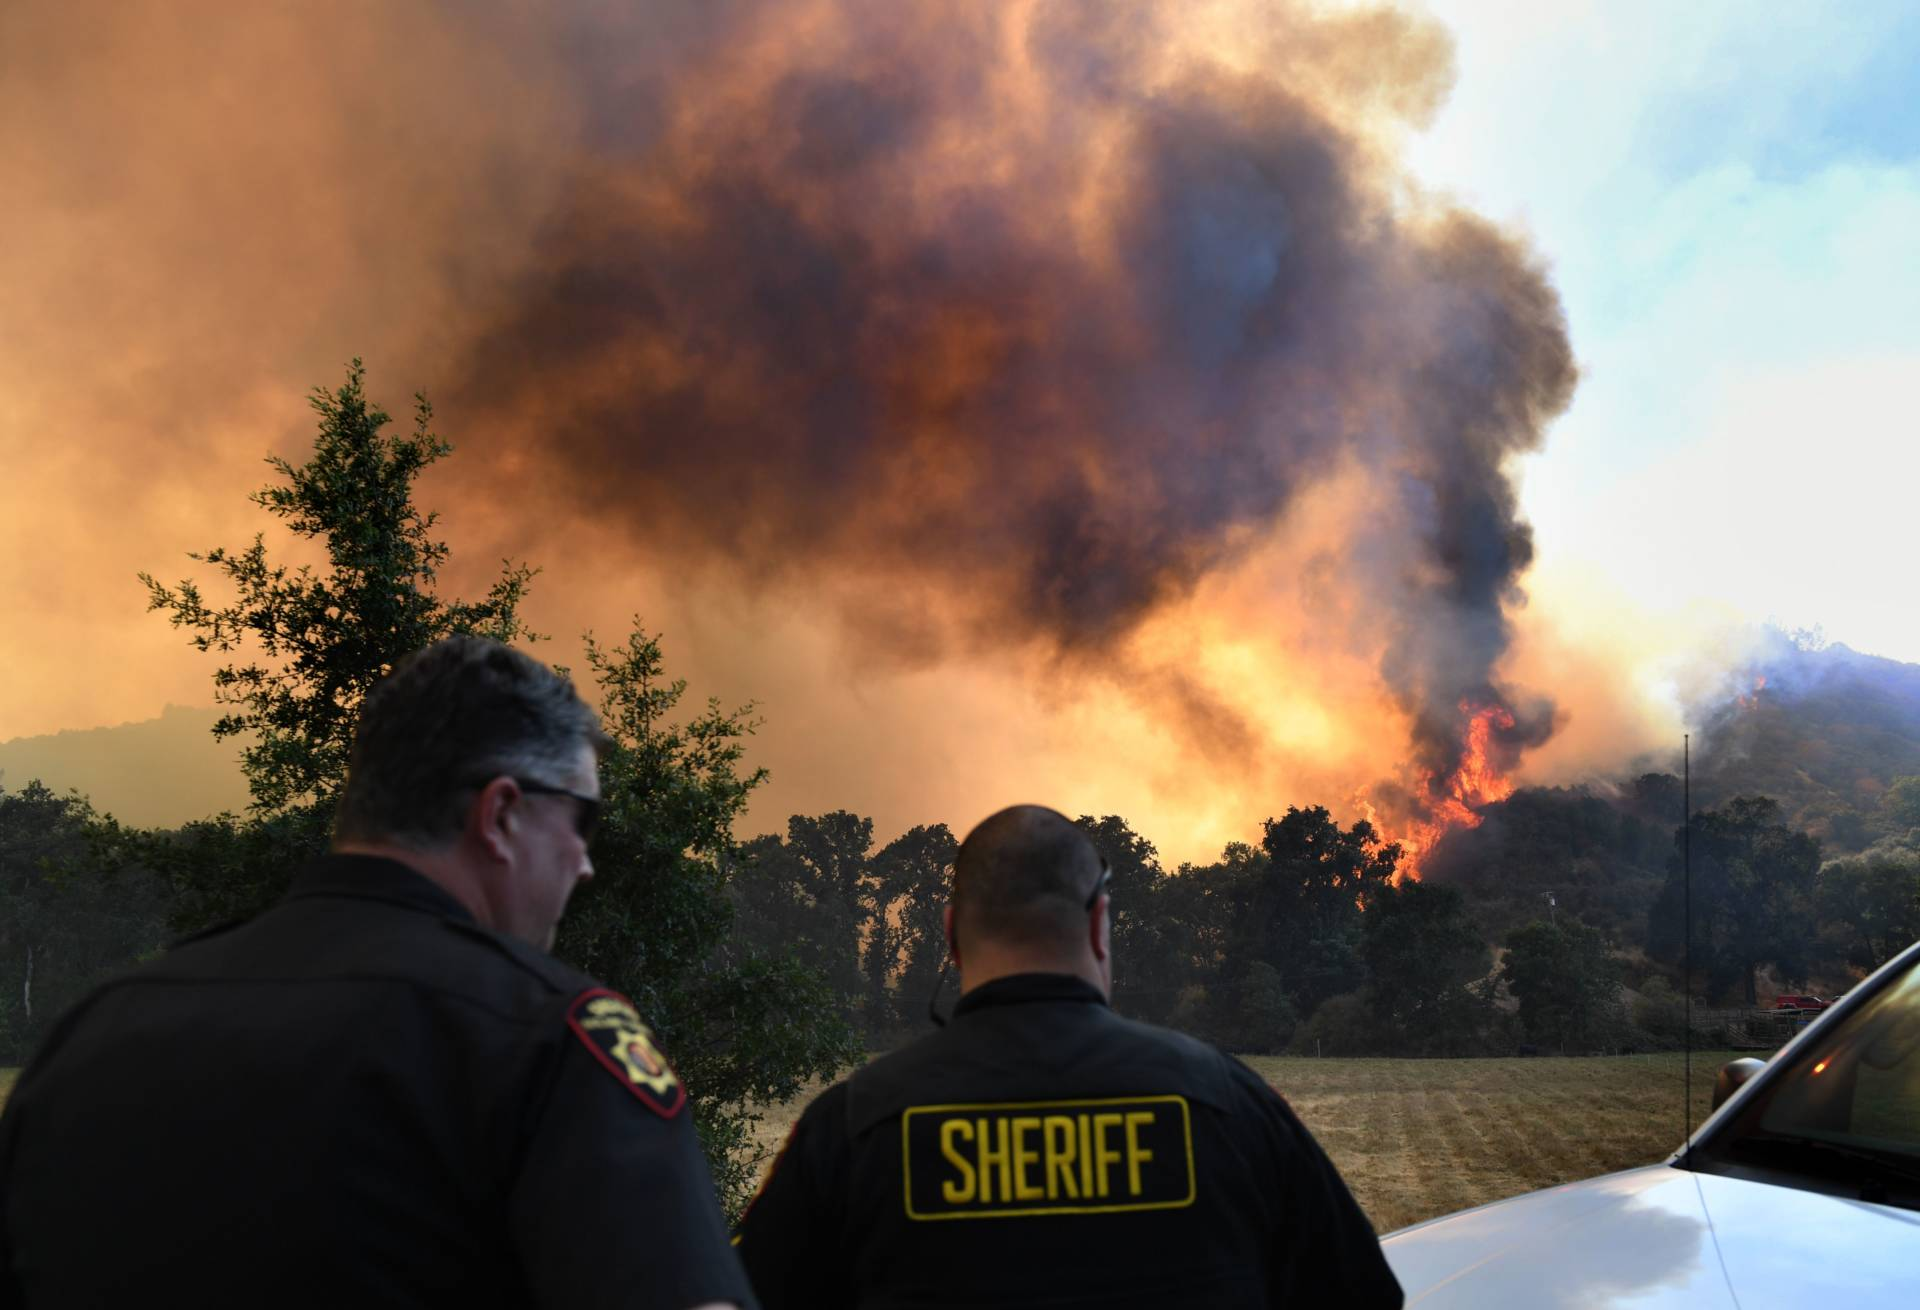 The town Sheriff watches the wind swept flames from the River fire as it again threatens the town of Lakeport on August 3, 2018.  MARK RALSTON/AFP/Getty Images